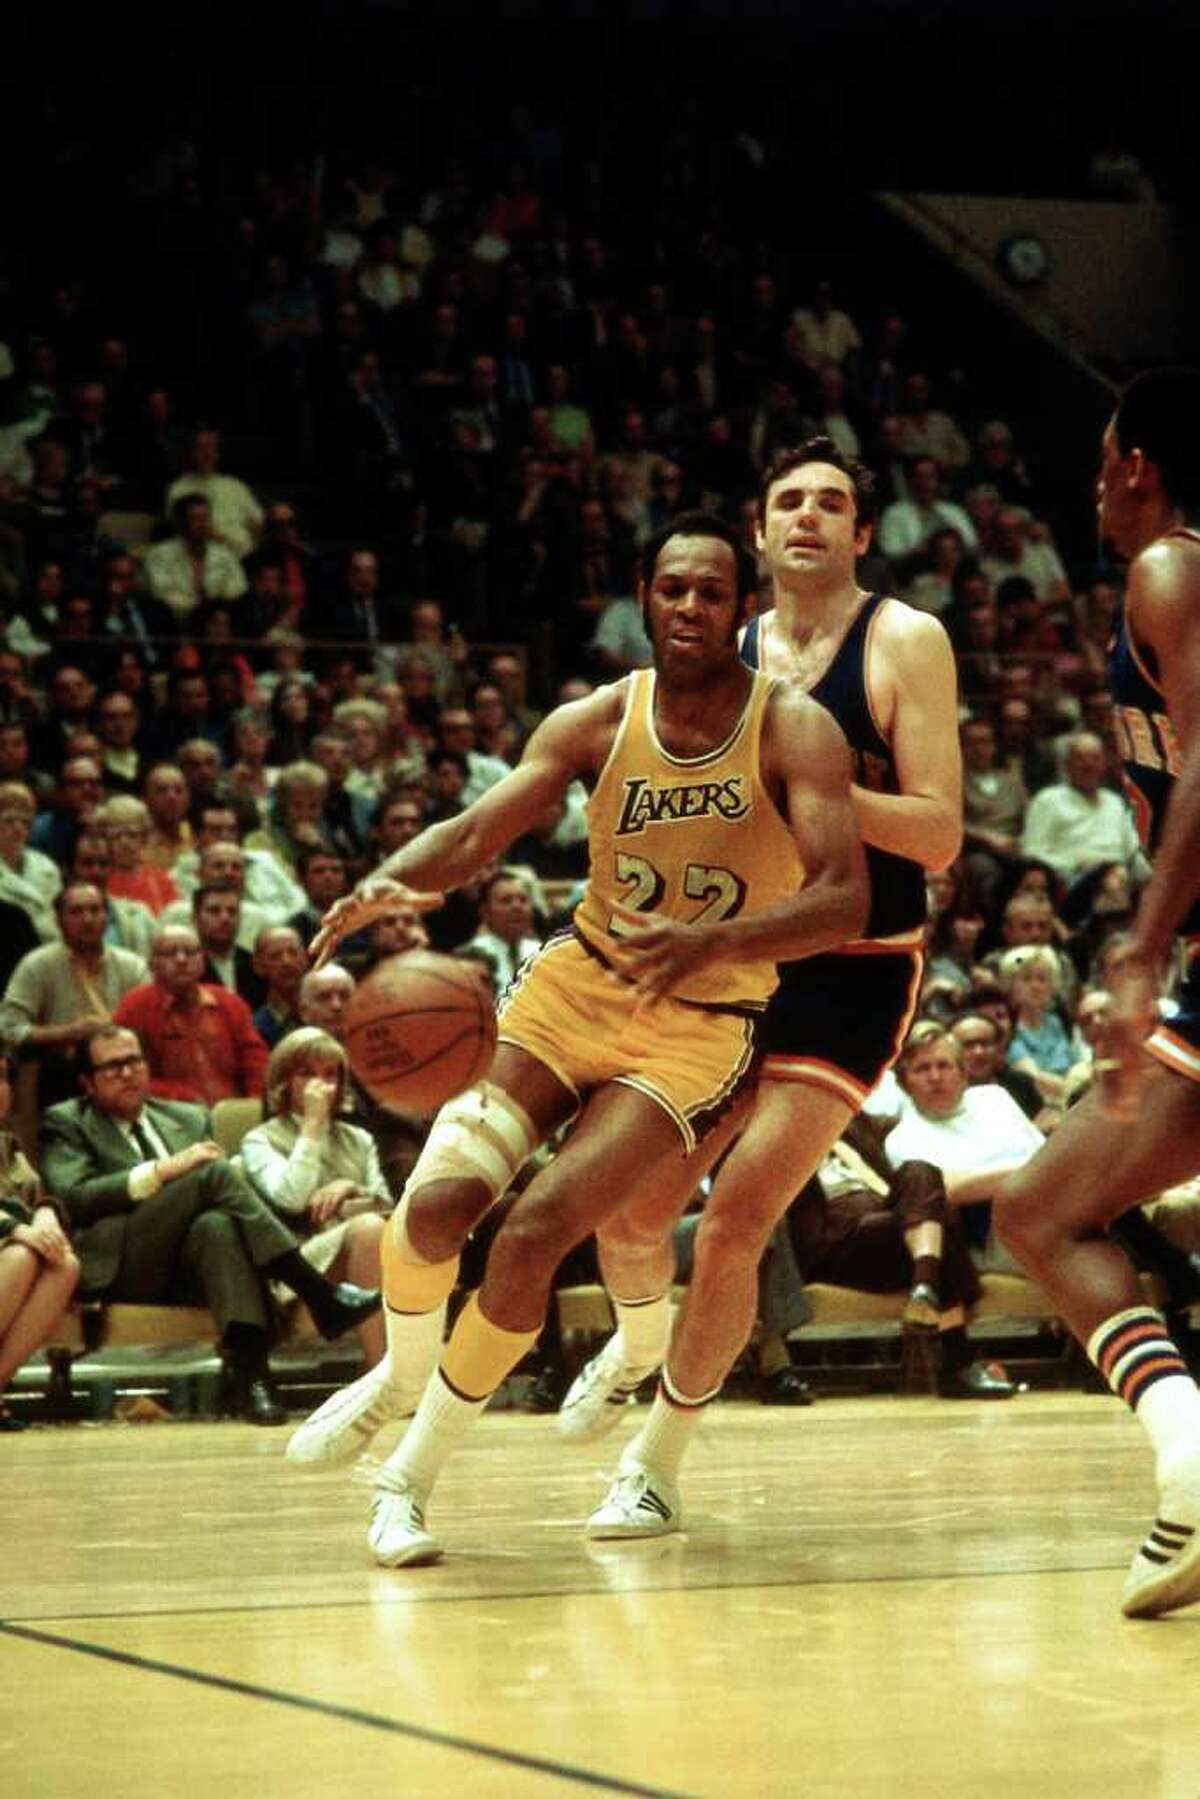 Elgin Baylor , who played for the Minnesota and Los Angeles Lakers, averaged a double-double in 11 seasons, from 1958-65 and 1966-70. His career average was 27.4 points and 13.5 rebounds. His best seasons were 1960-61, when he averaged 34.8 points and 19.8 rebounds, and 1961-62, when he averaged 38.3 and 18.6.